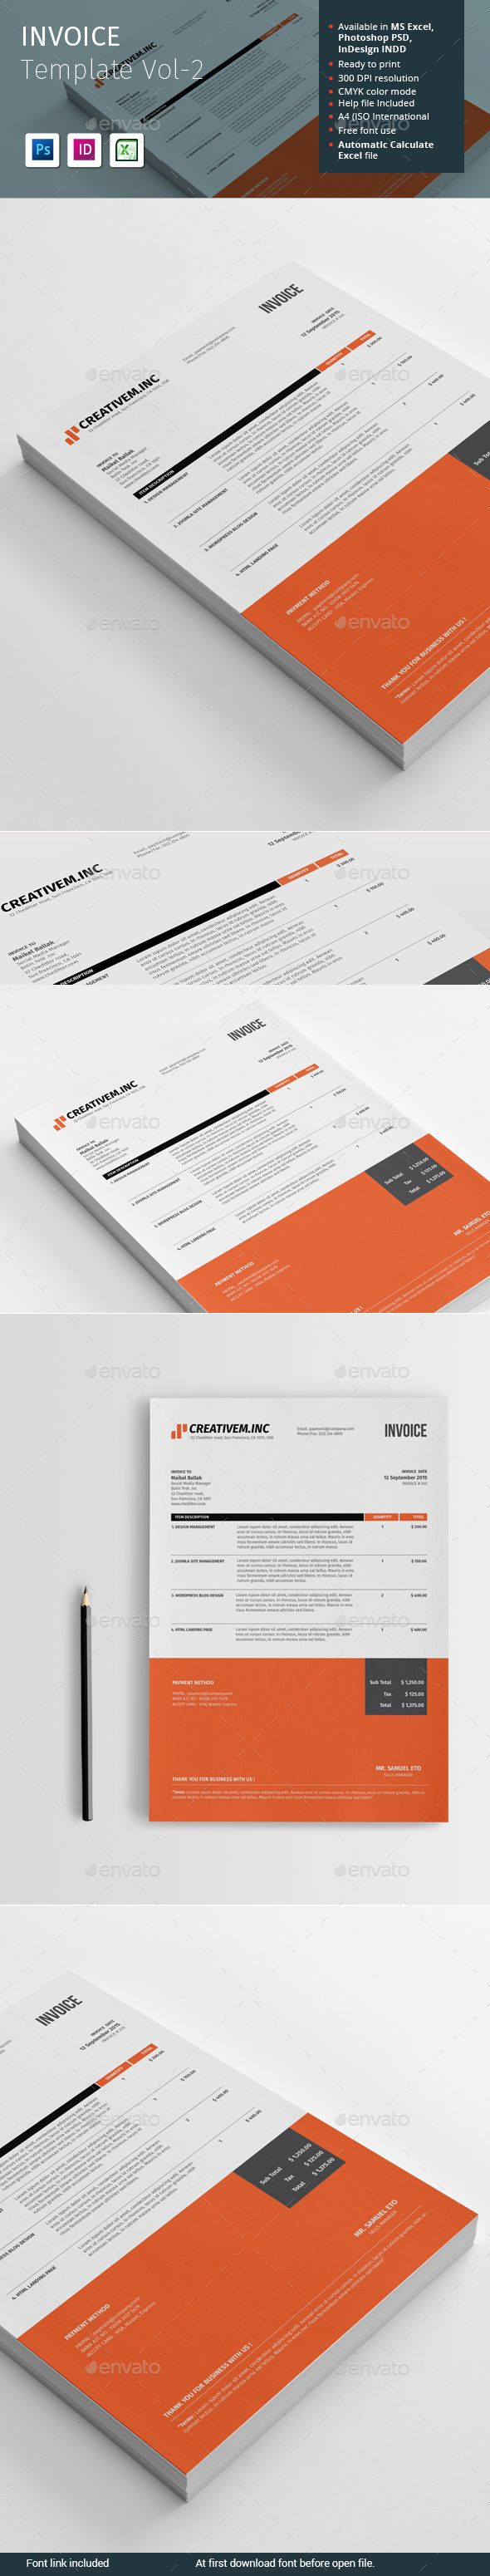 The 377 best Form Design images on Pinterest   Invoice design     Invoice Template Vol 2